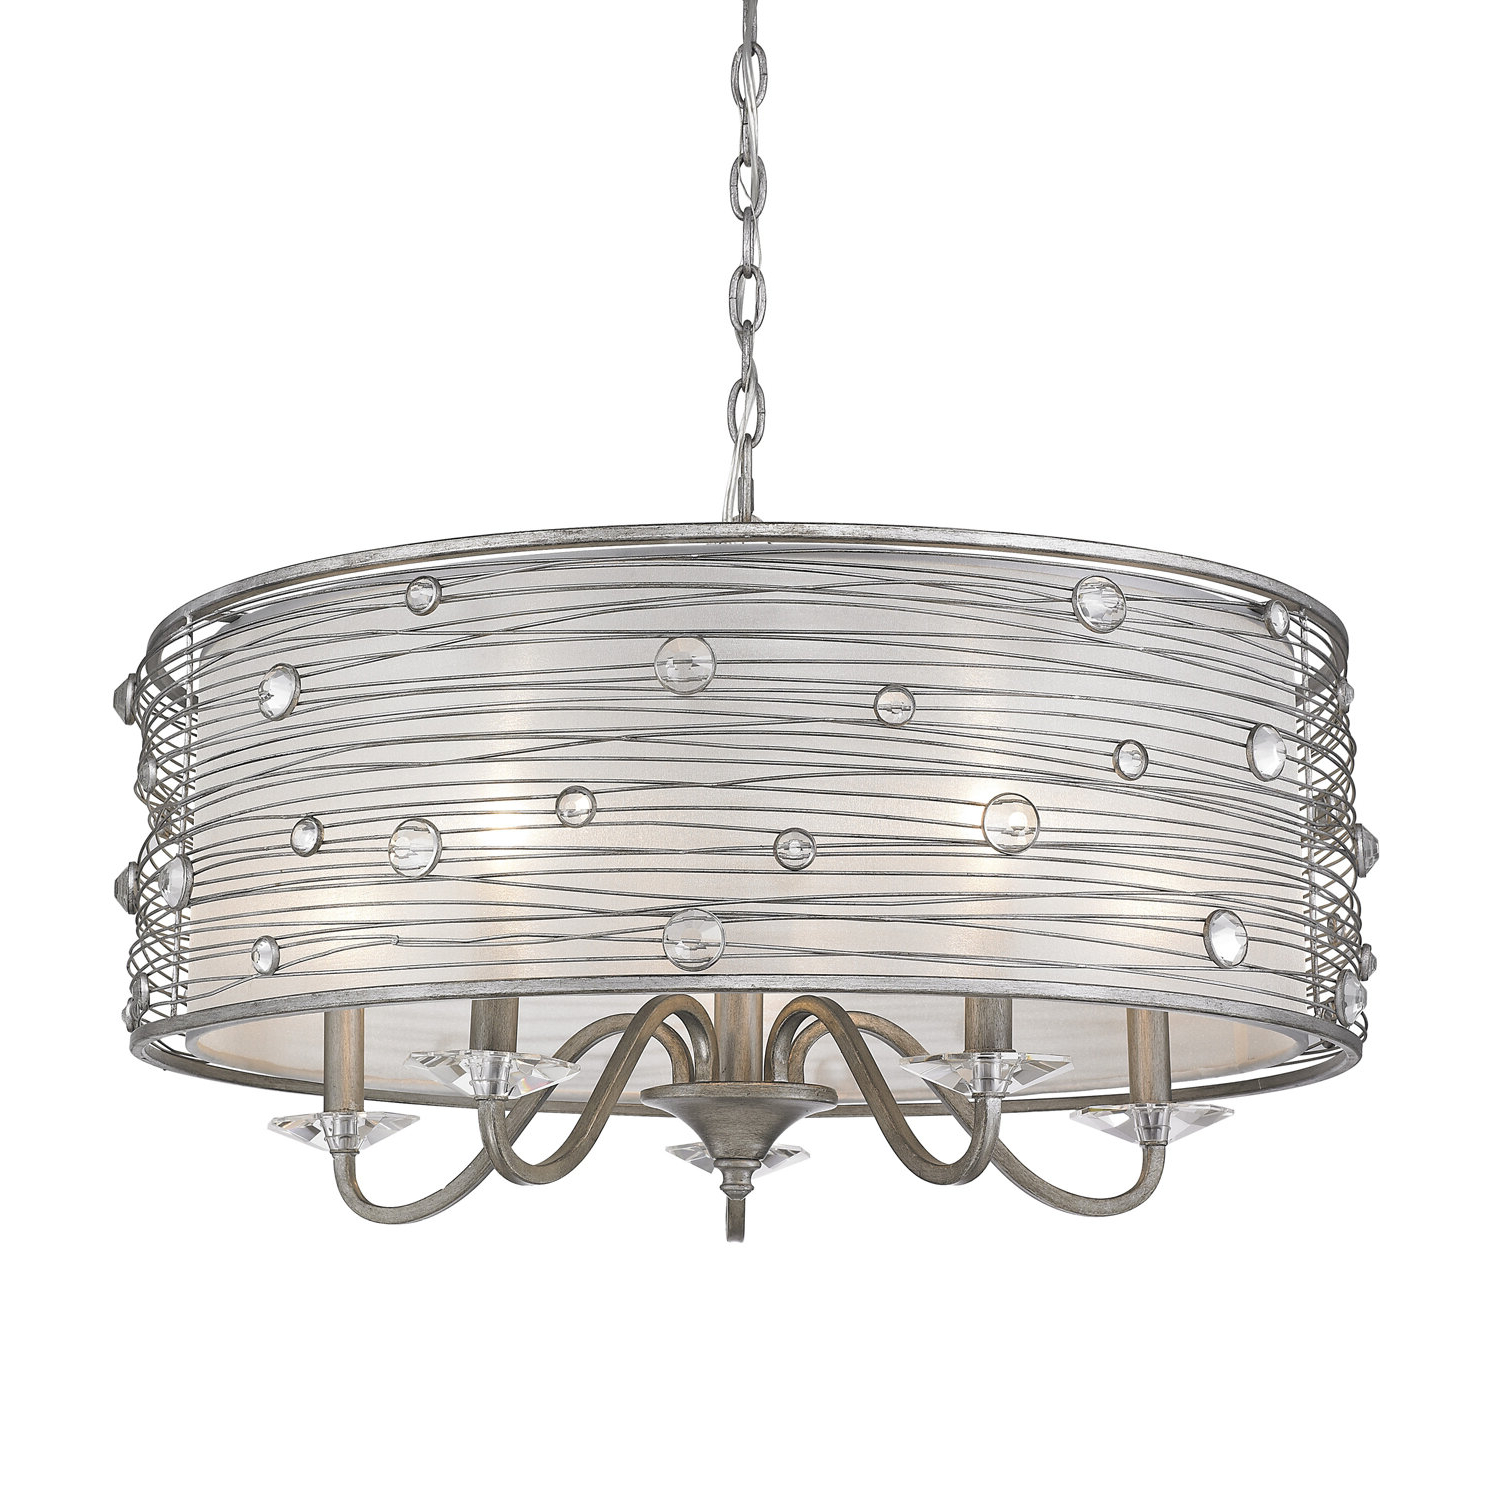 Hermione 5 Light Drum Chandelier Intended For Well Liked Buster 5 Light Drum Chandeliers (Gallery 6 of 25)